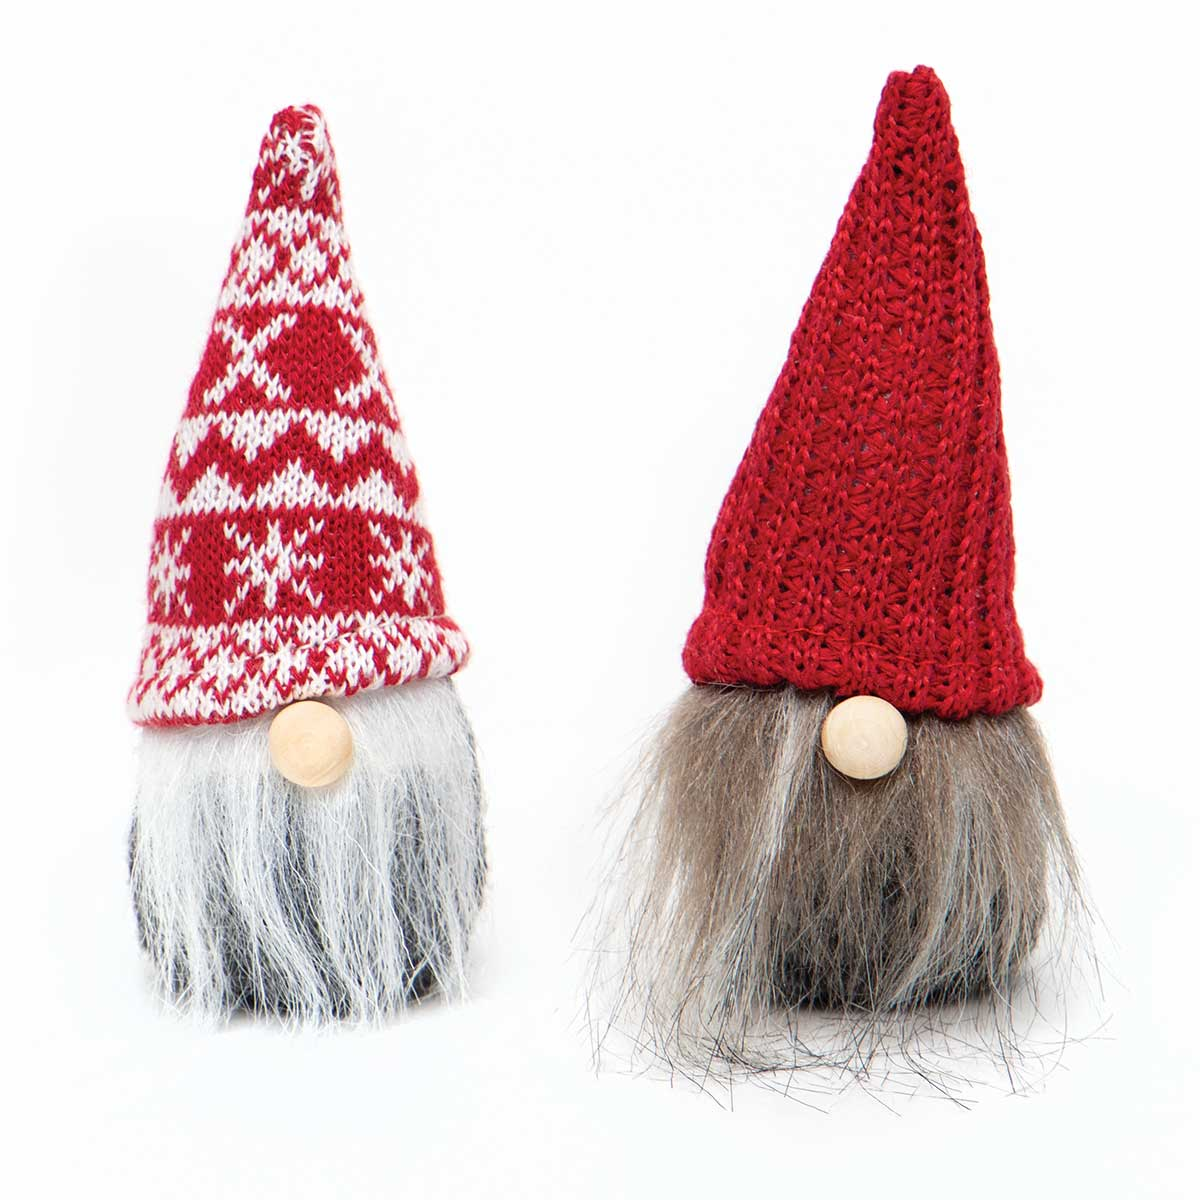 WEE GNOME ORNAMENT RED/GREY WITH KNIT HAT, WOOD